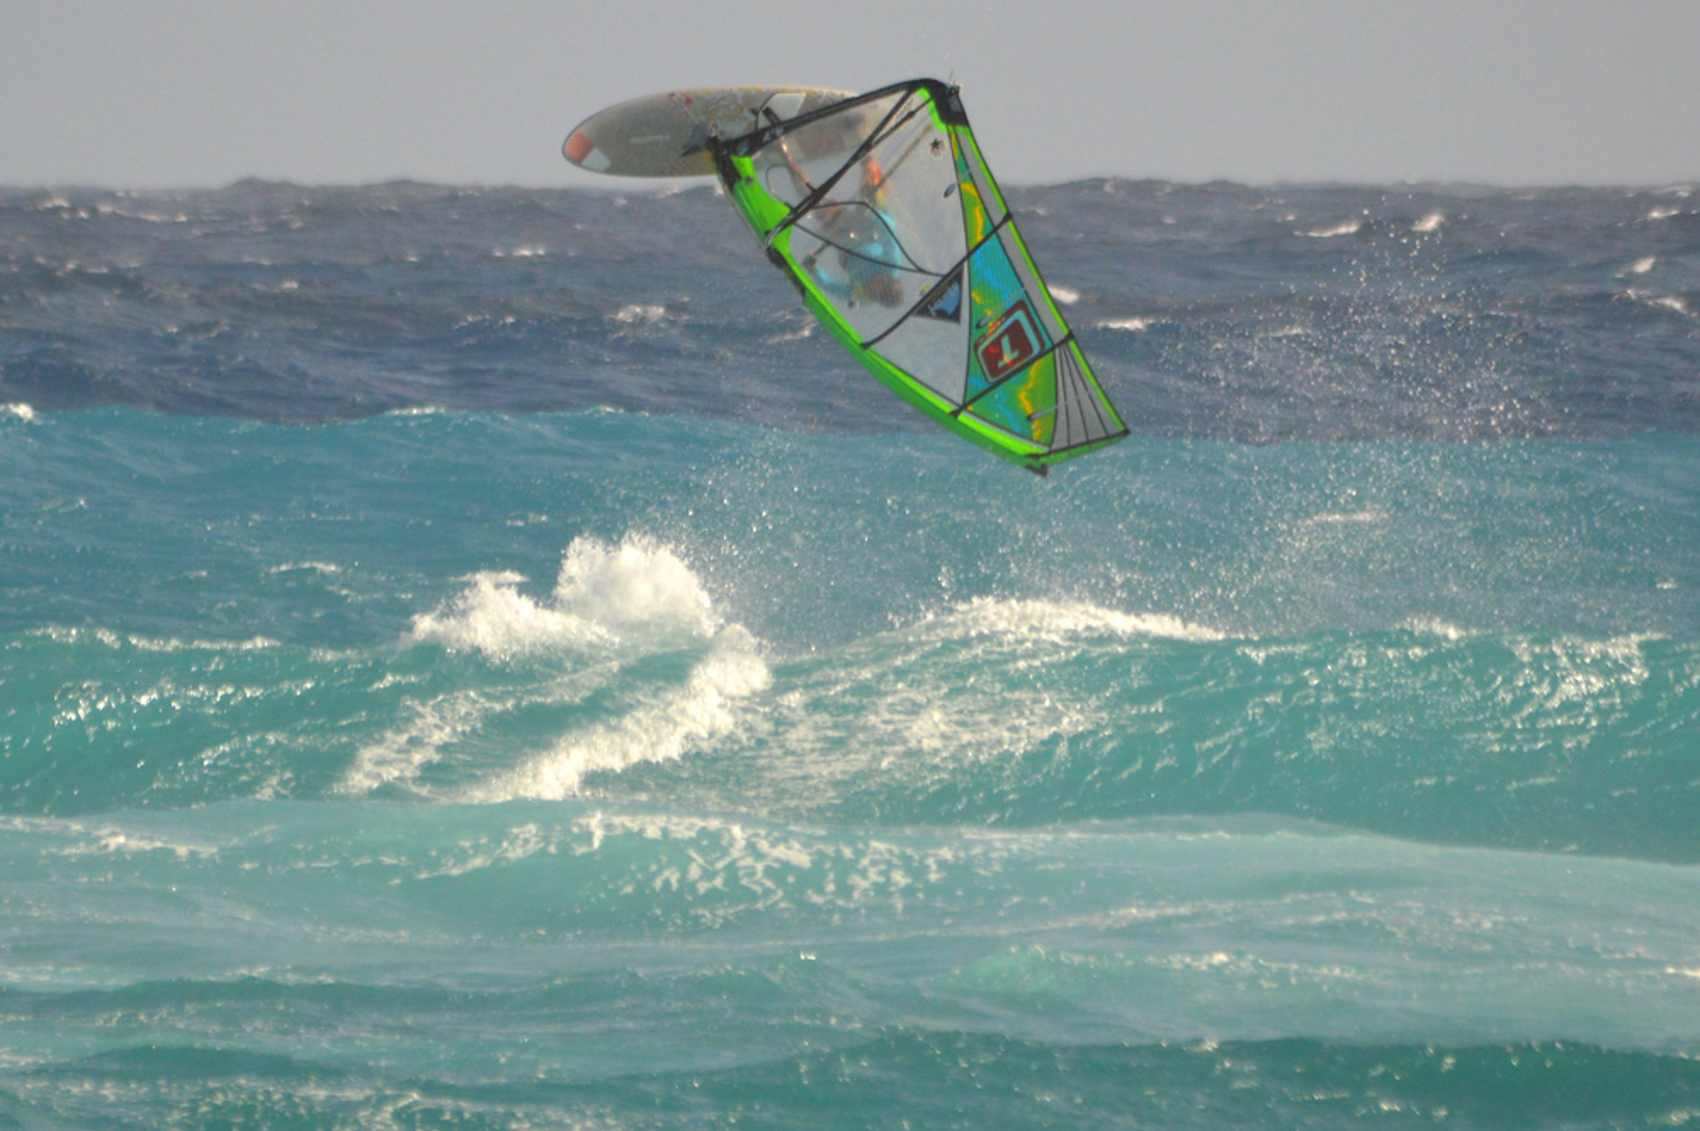 Windsurfing in Silver Sands - Barbados